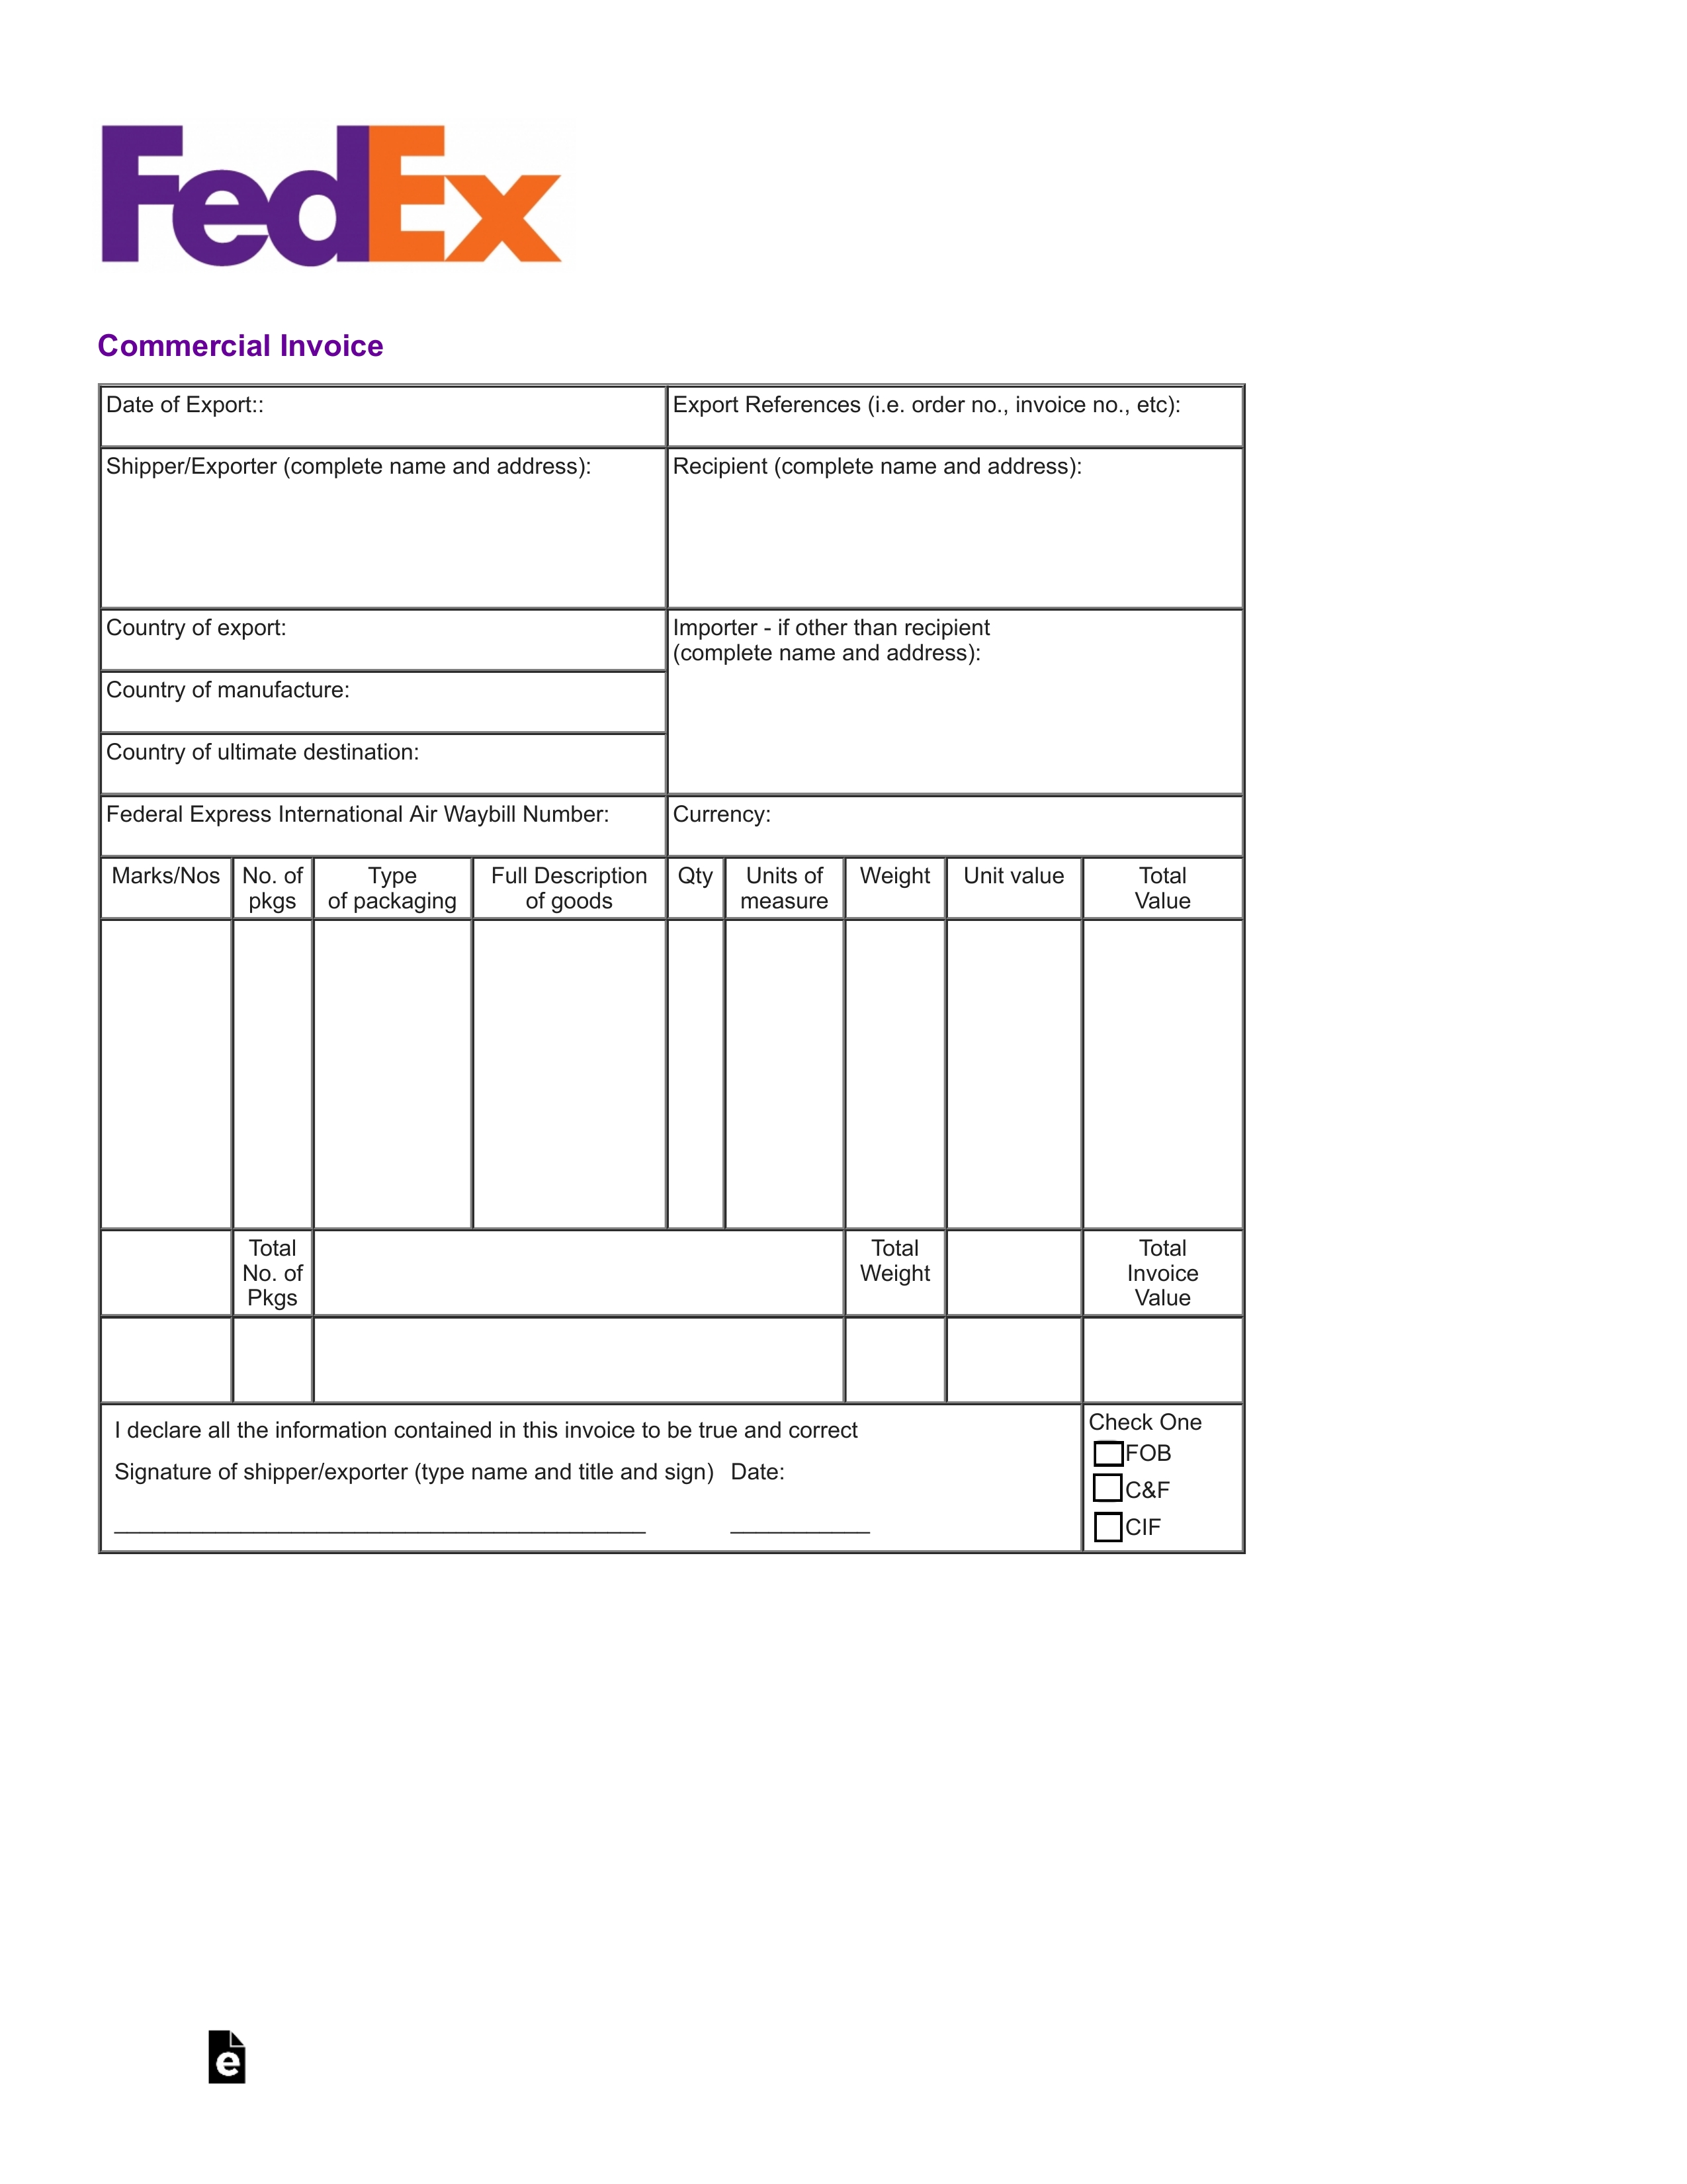 004 commercial invoice template pdf fillable fedex fedex international commercial invoice fillable